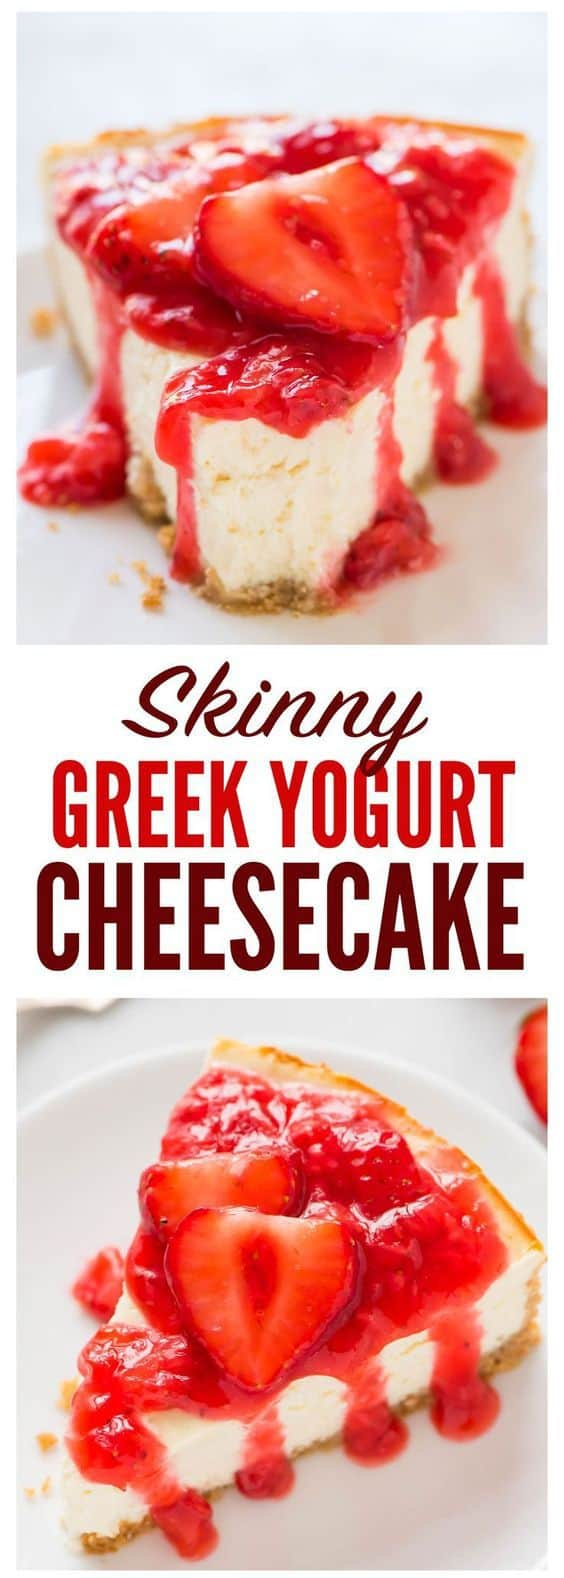 An easy, lightened-up recipe for Greek Yogurt Cheesecake with a fresh strawberry sauce and buttery graham cracker crust. Creamy, fluffy, and the perfect dessert for any occasion! Recipe at wellplated.com | @wellplated #dessert #healthierdessert #cheesecake #recipe